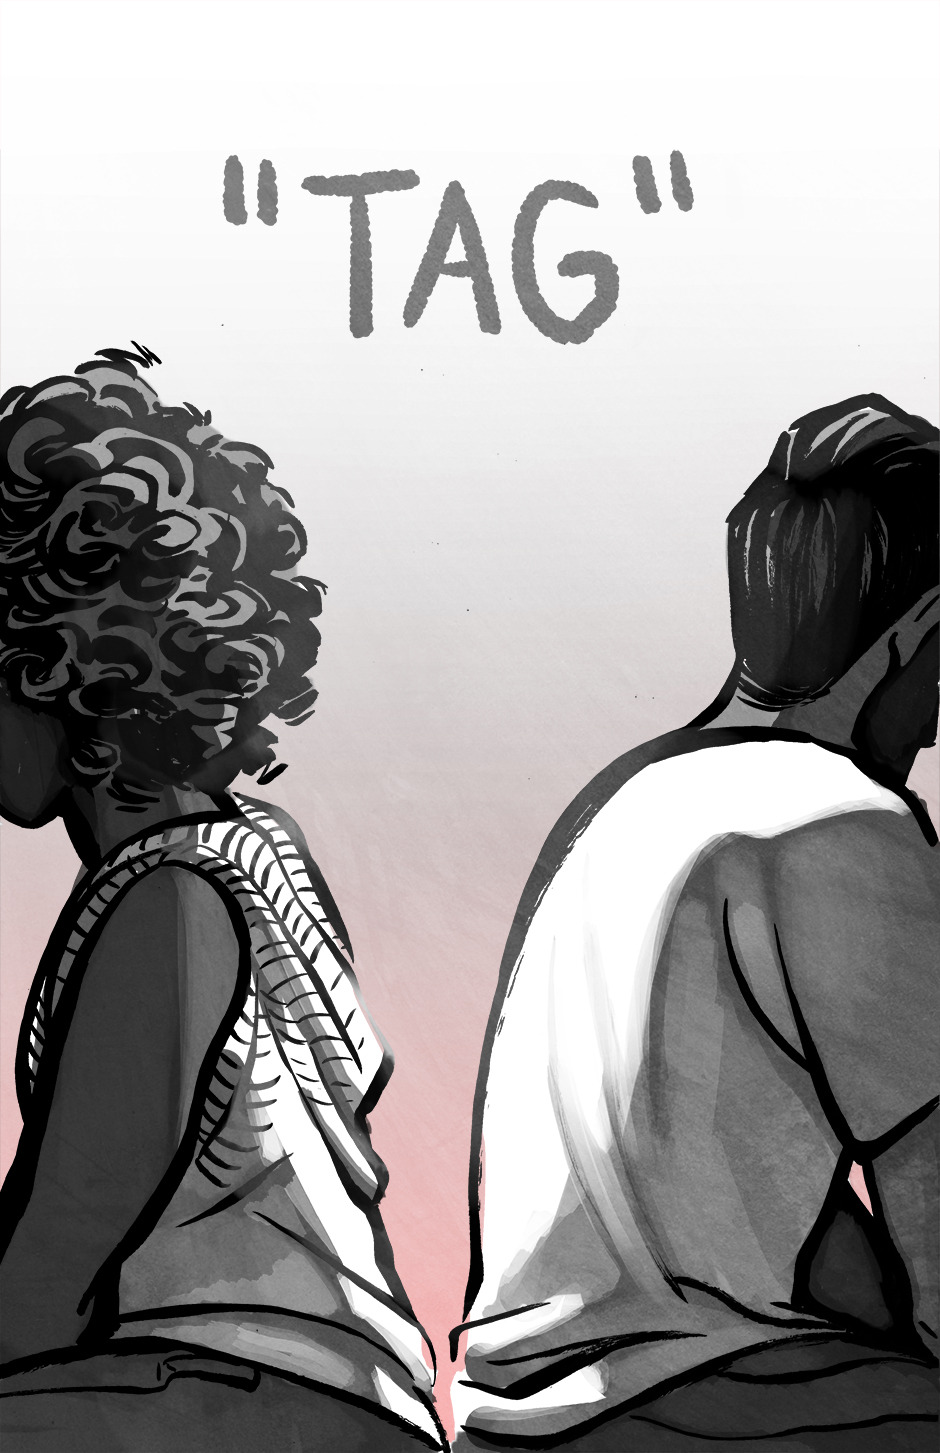 Chapter 8: Tag